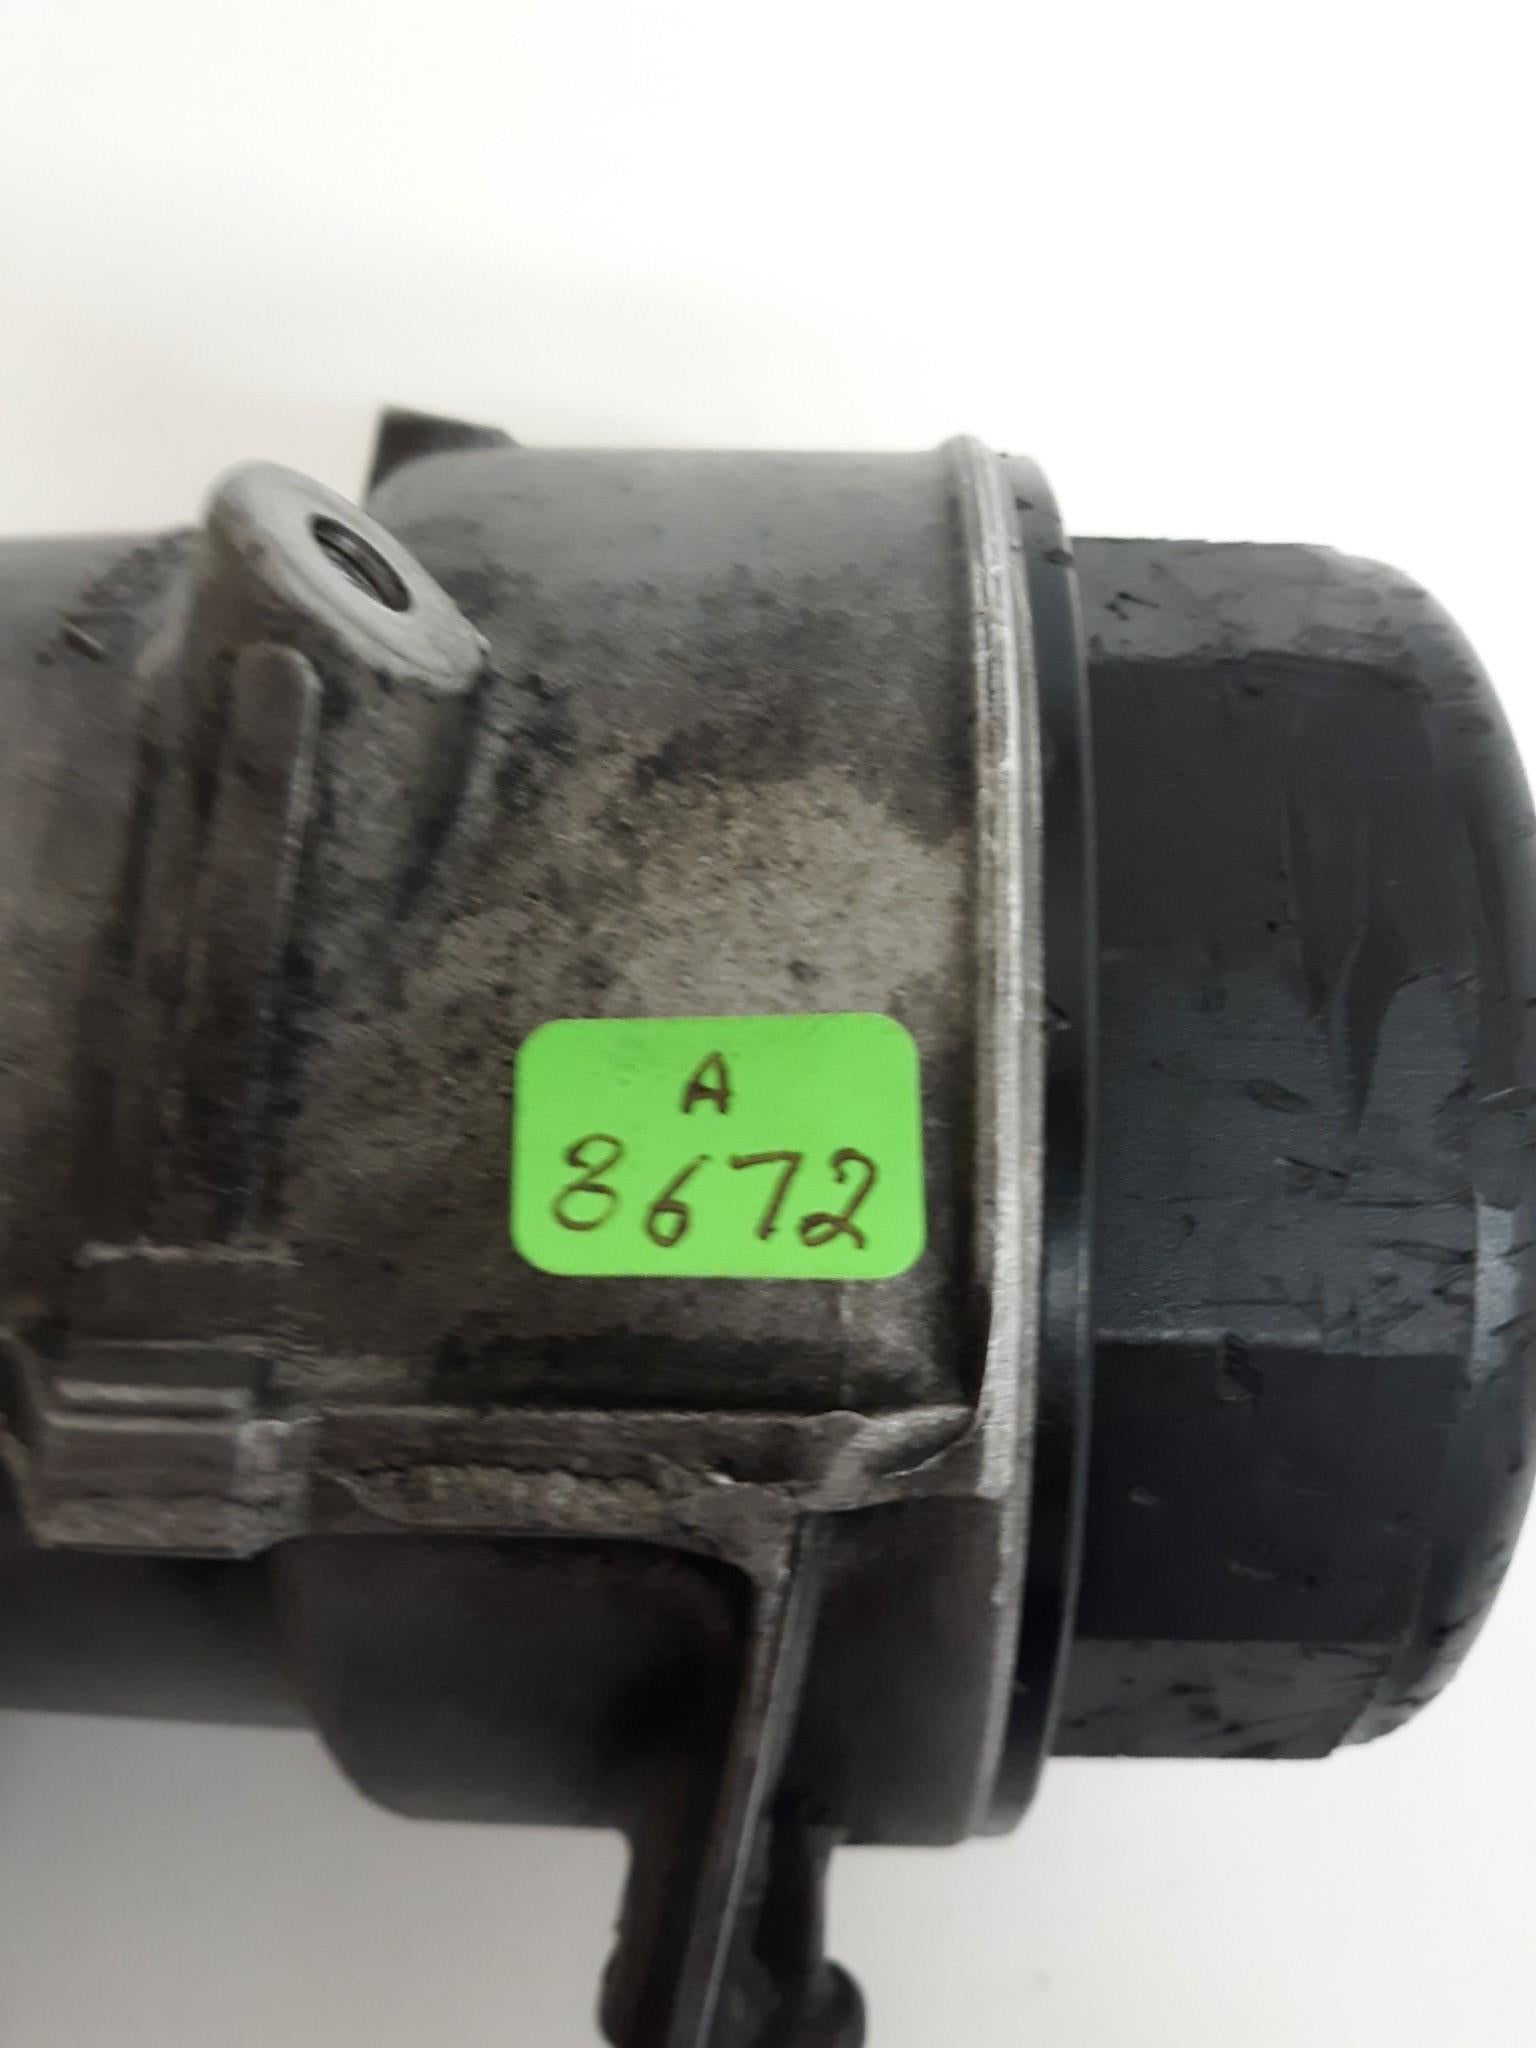 Mercedes R320 ML320 Sprinter Diesel Oil Filter Housing 6740273366 OEM